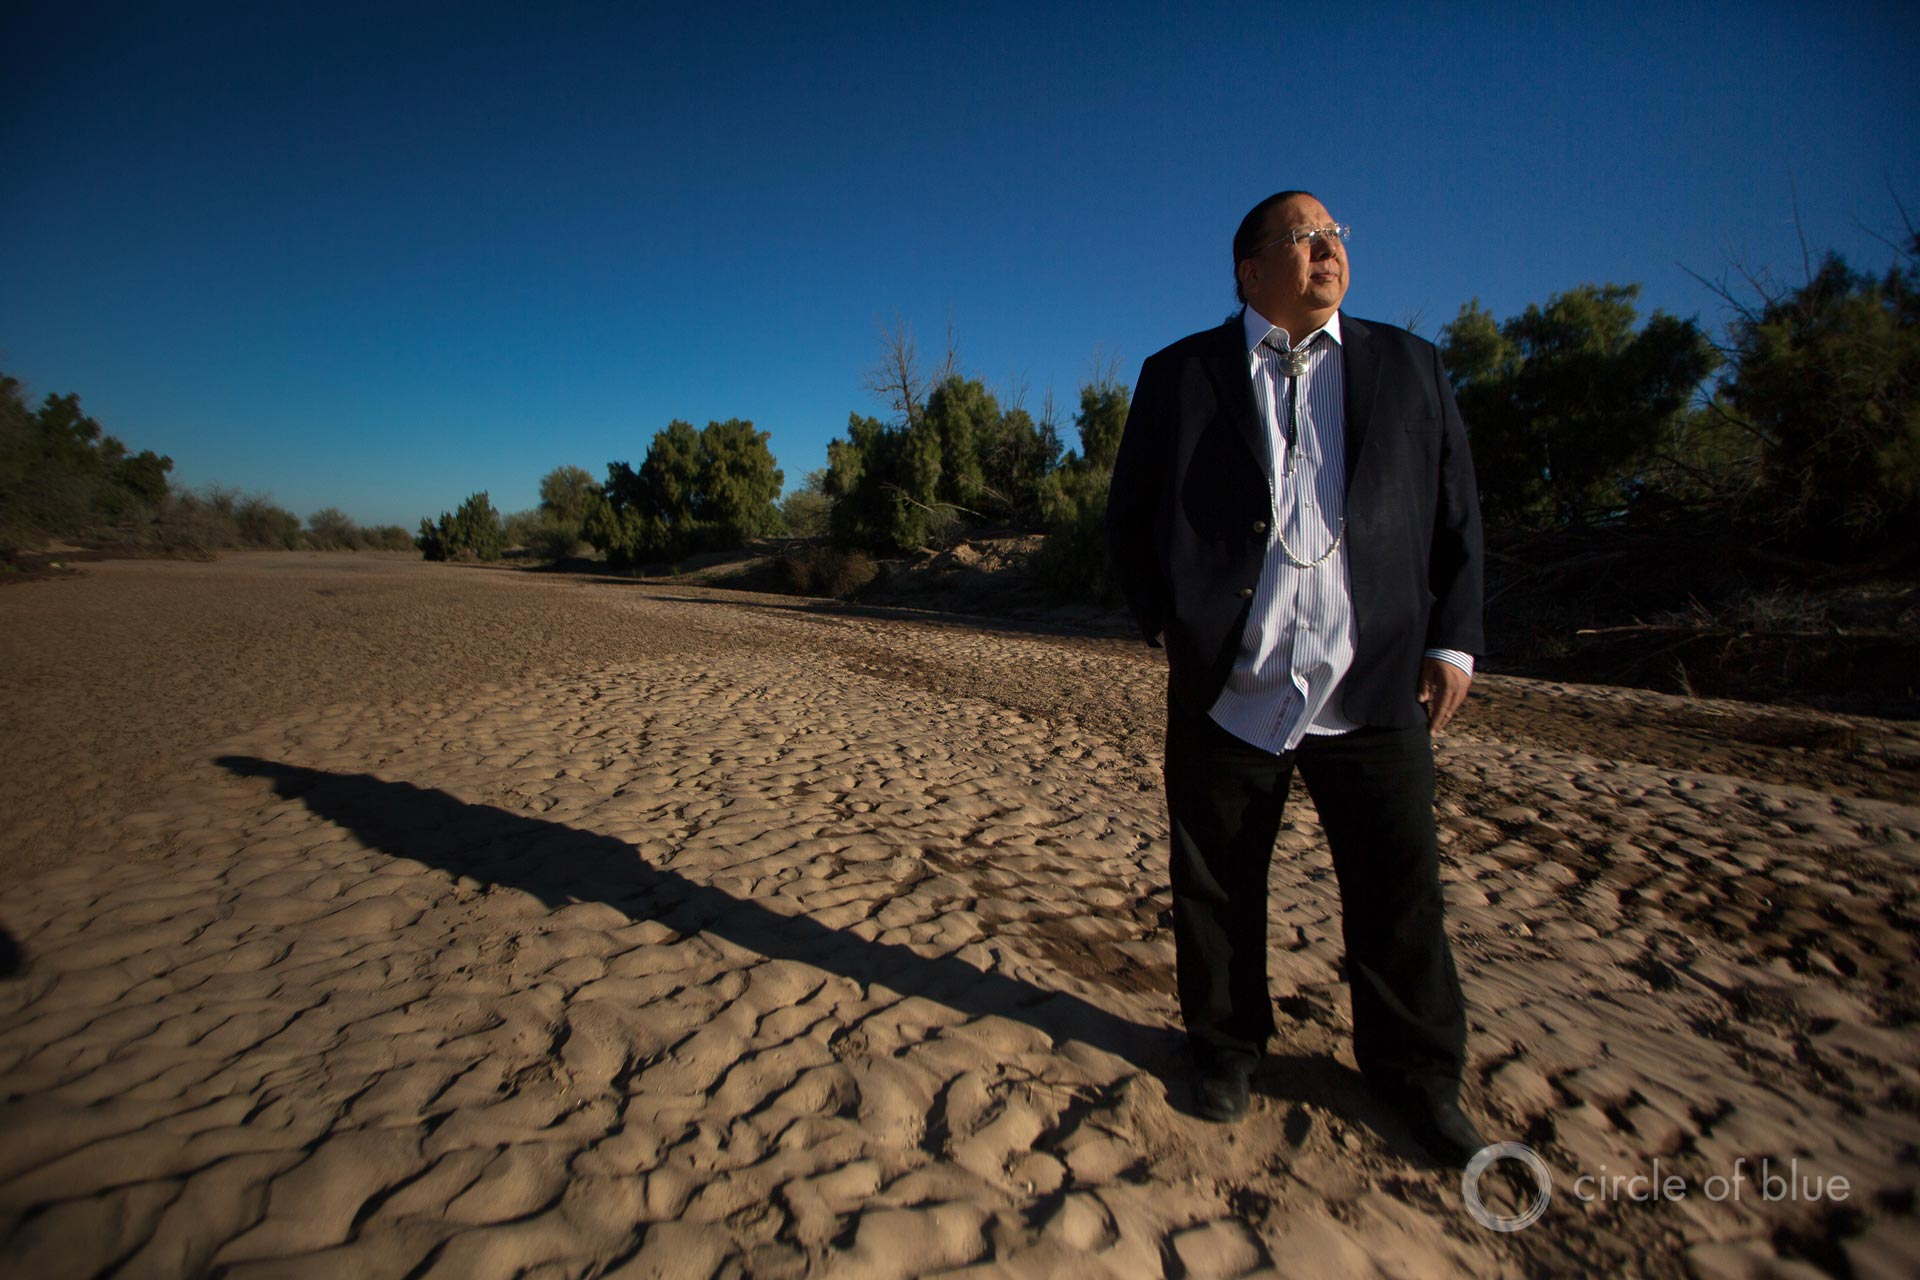 Governor Stephen Roe Lewis, leader of the Gila River Indian Community, stands in the dry bed of the Gila River, outside of Sacaton, Arizona.